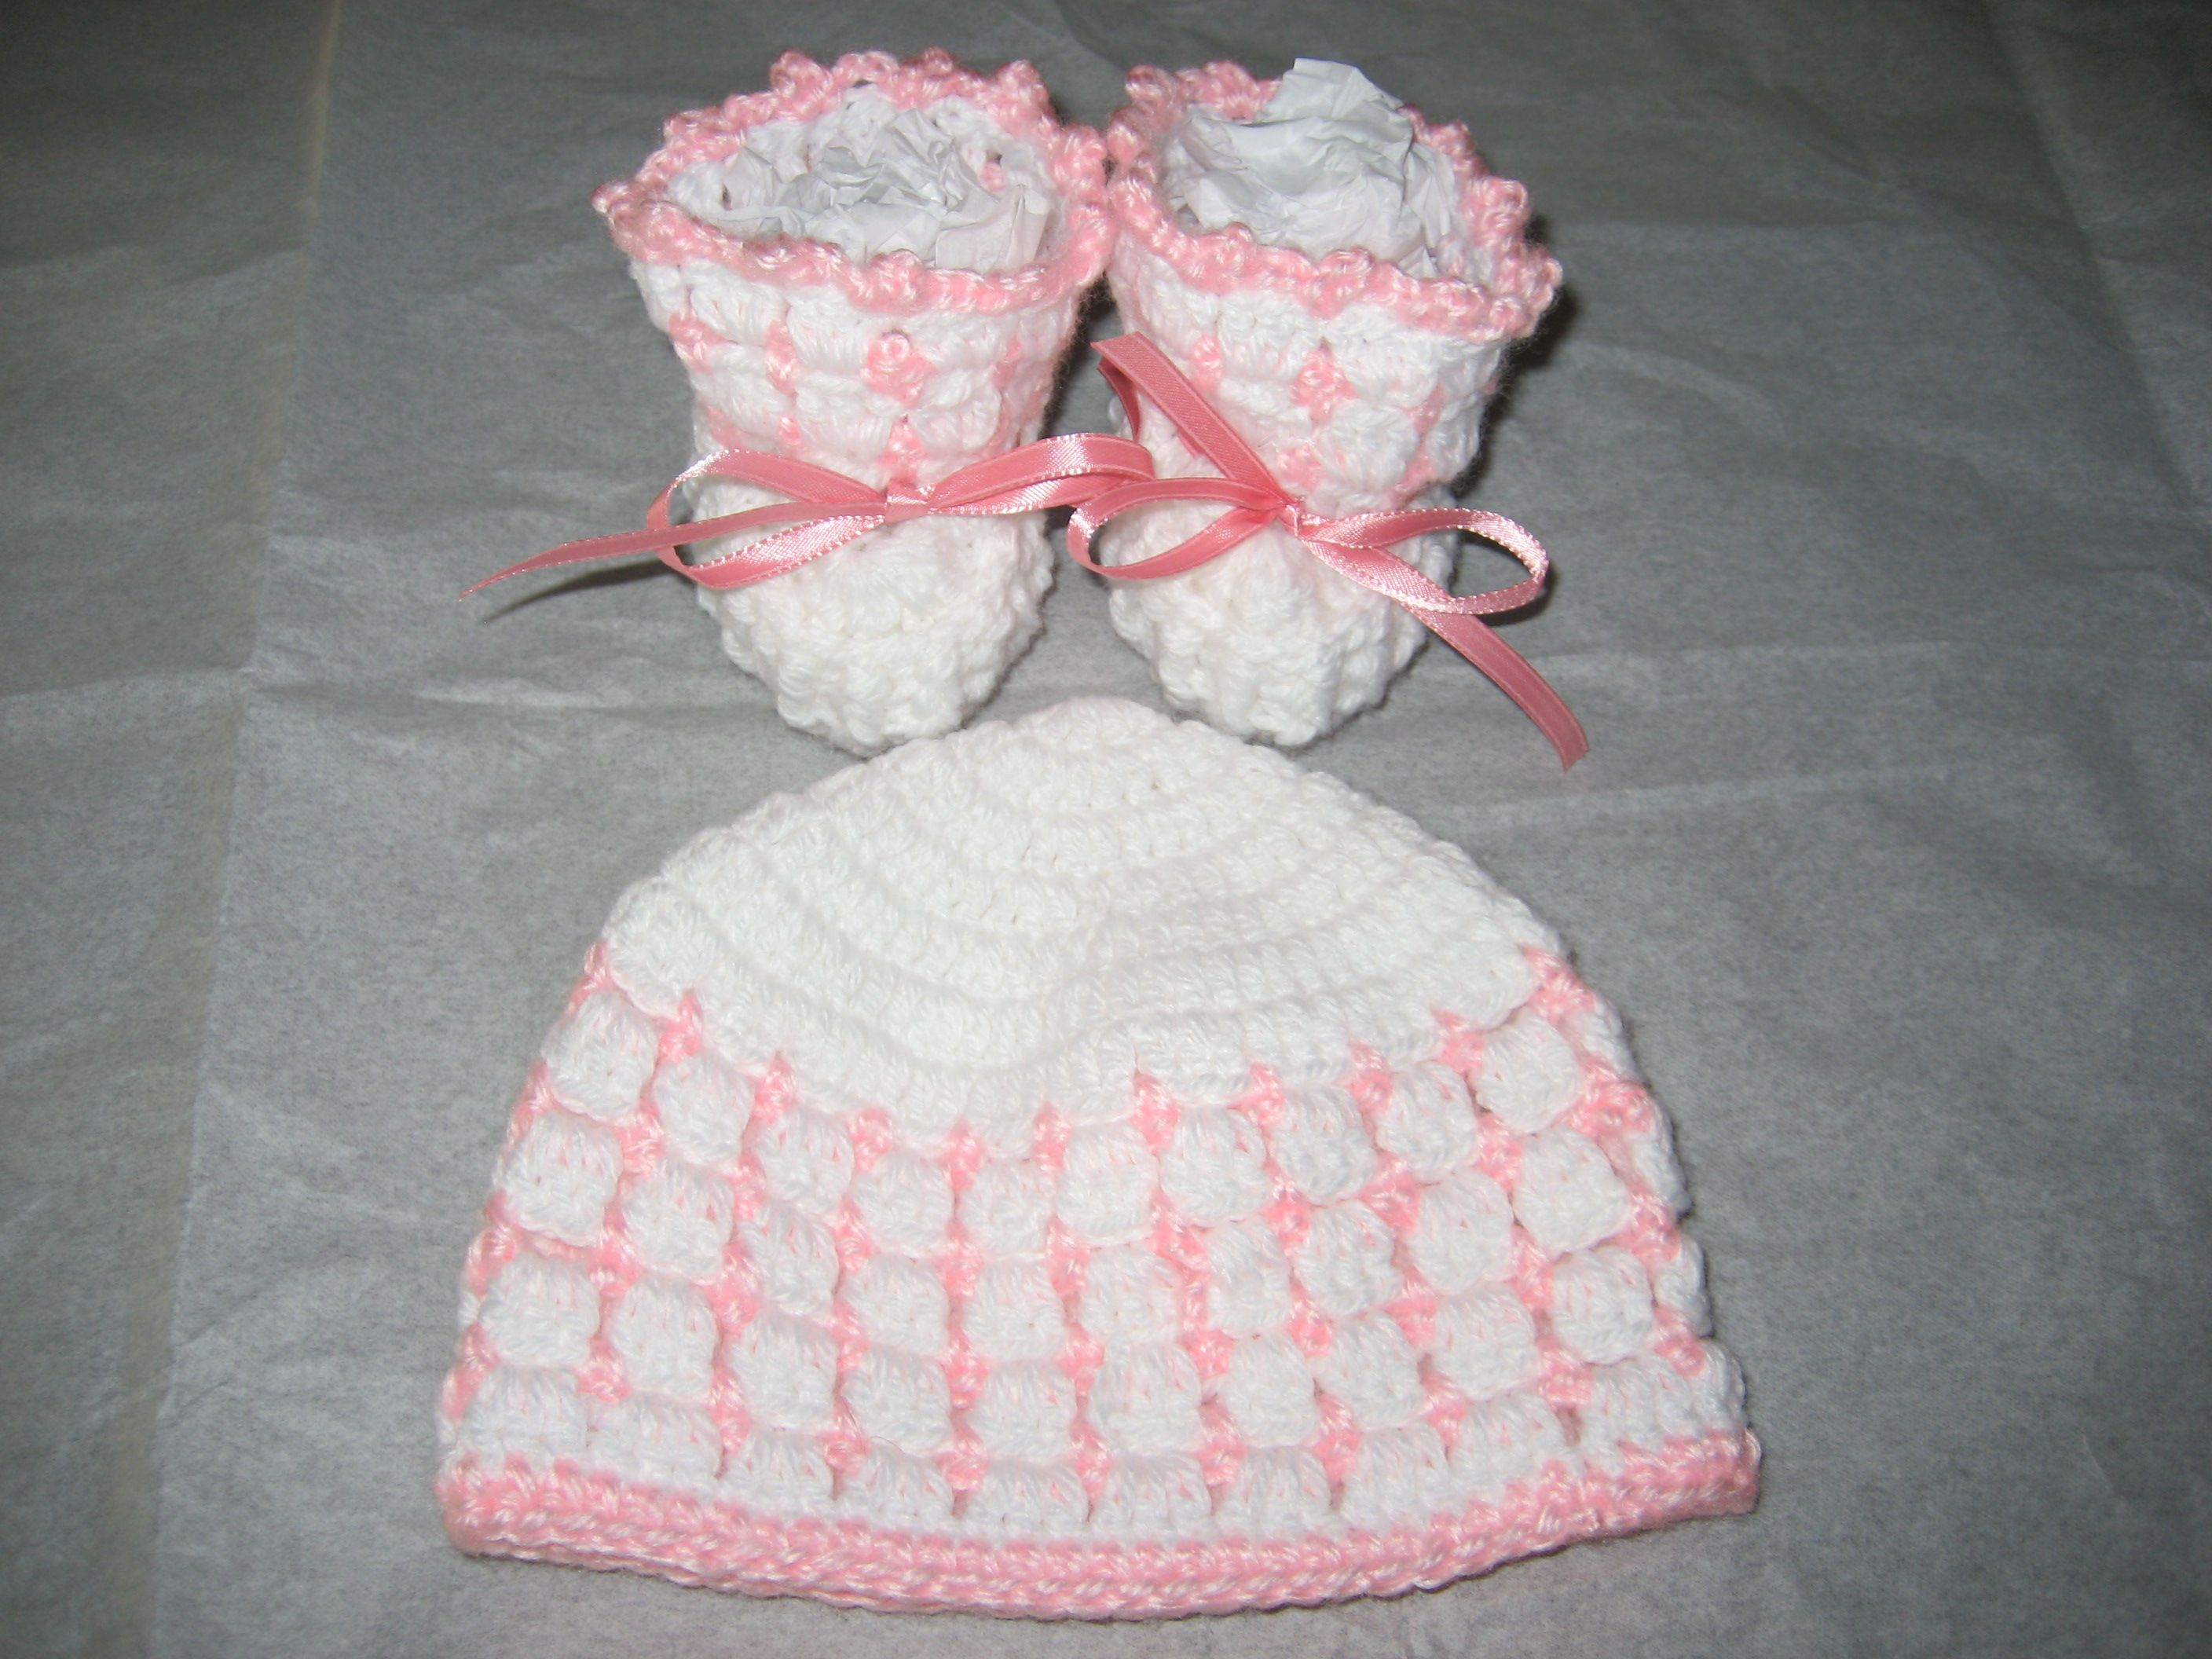 Baby booties and hat.